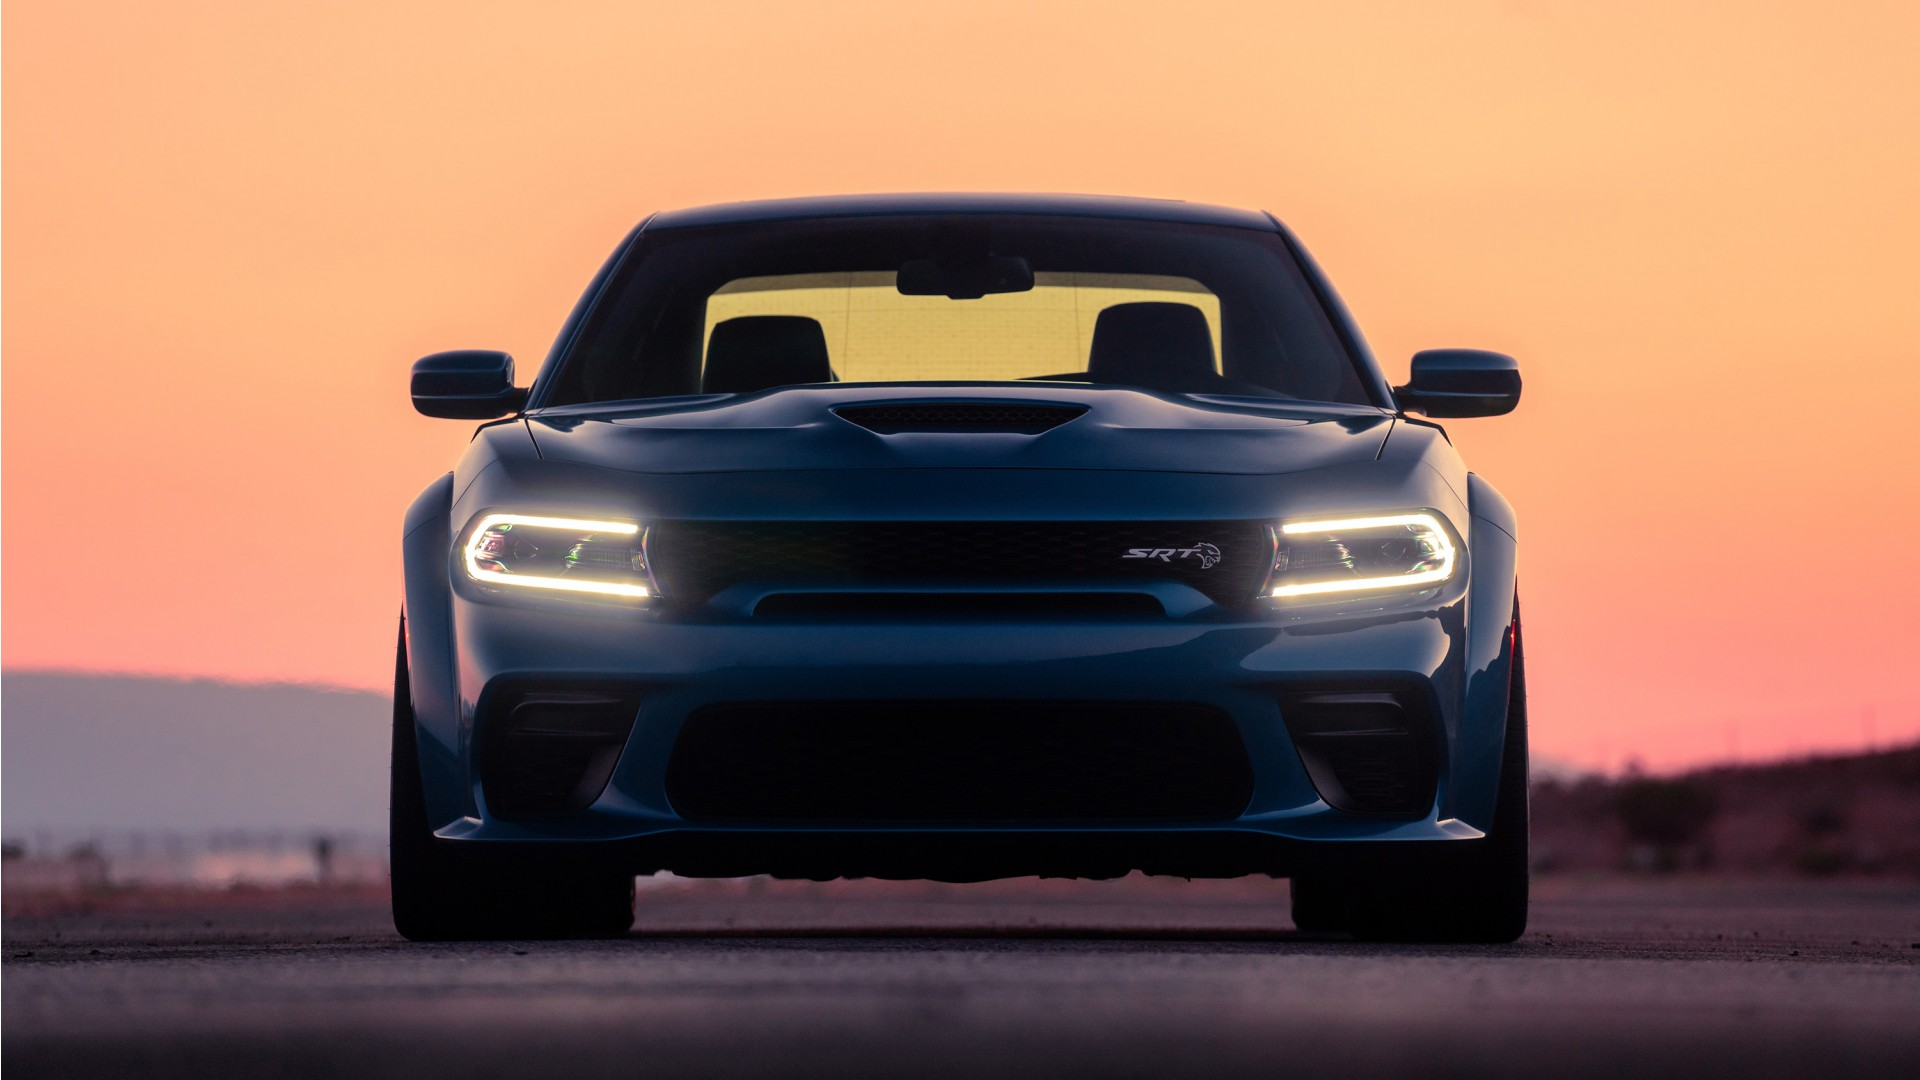 Dodge Charger Srt >> 2020 Dodge Charger SRT Hellcat Widebody 3 Wallpaper | HD Car Wallpapers | ID #12845